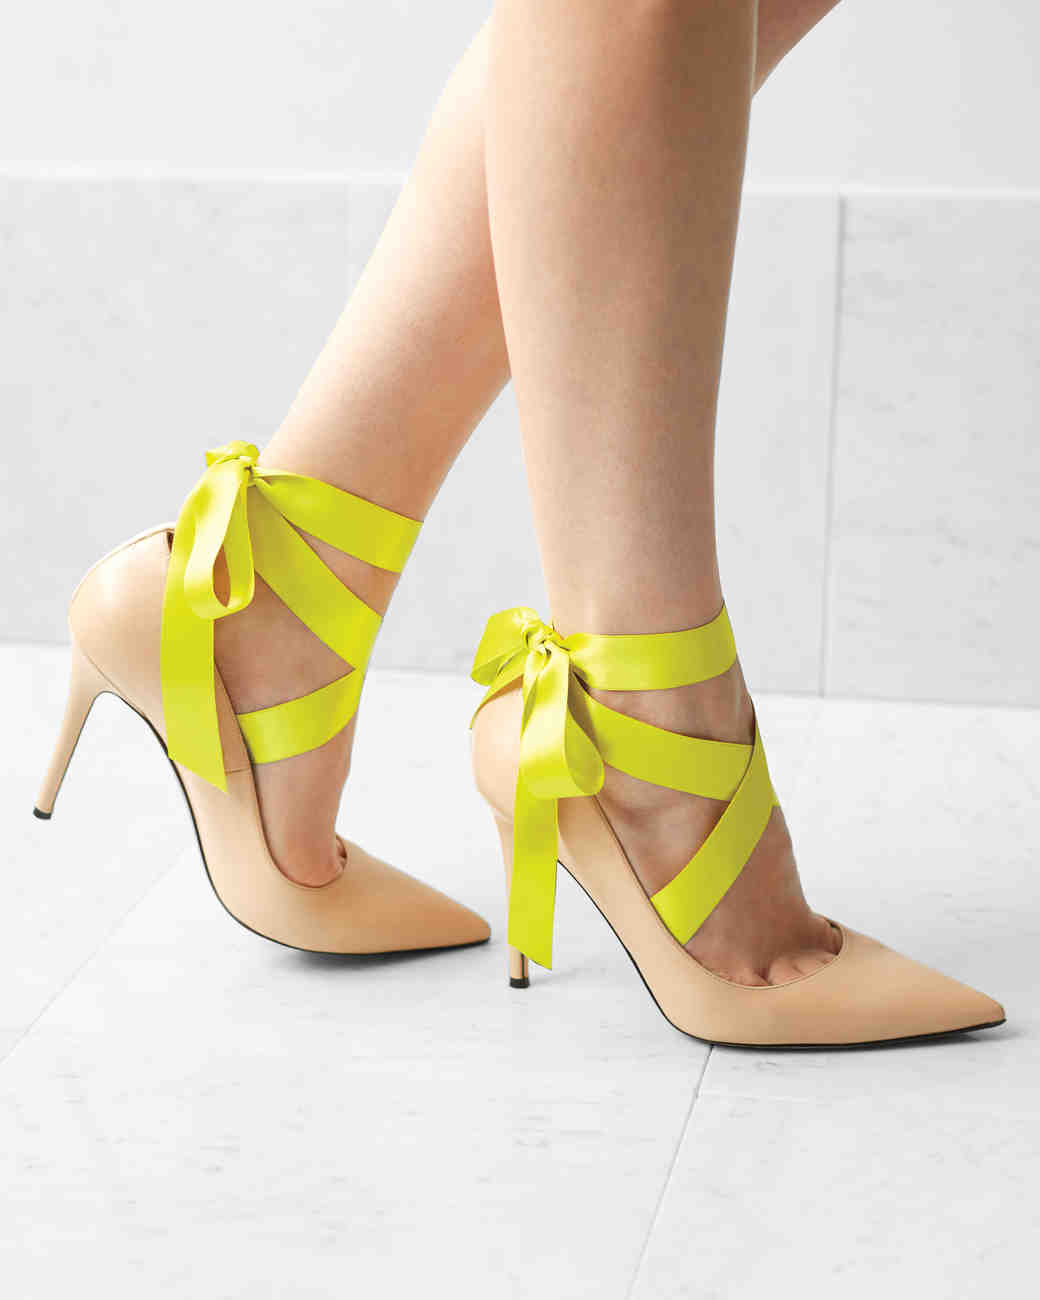 bridesmaid-green-ribbon-shoes-0259-d111712.jpg